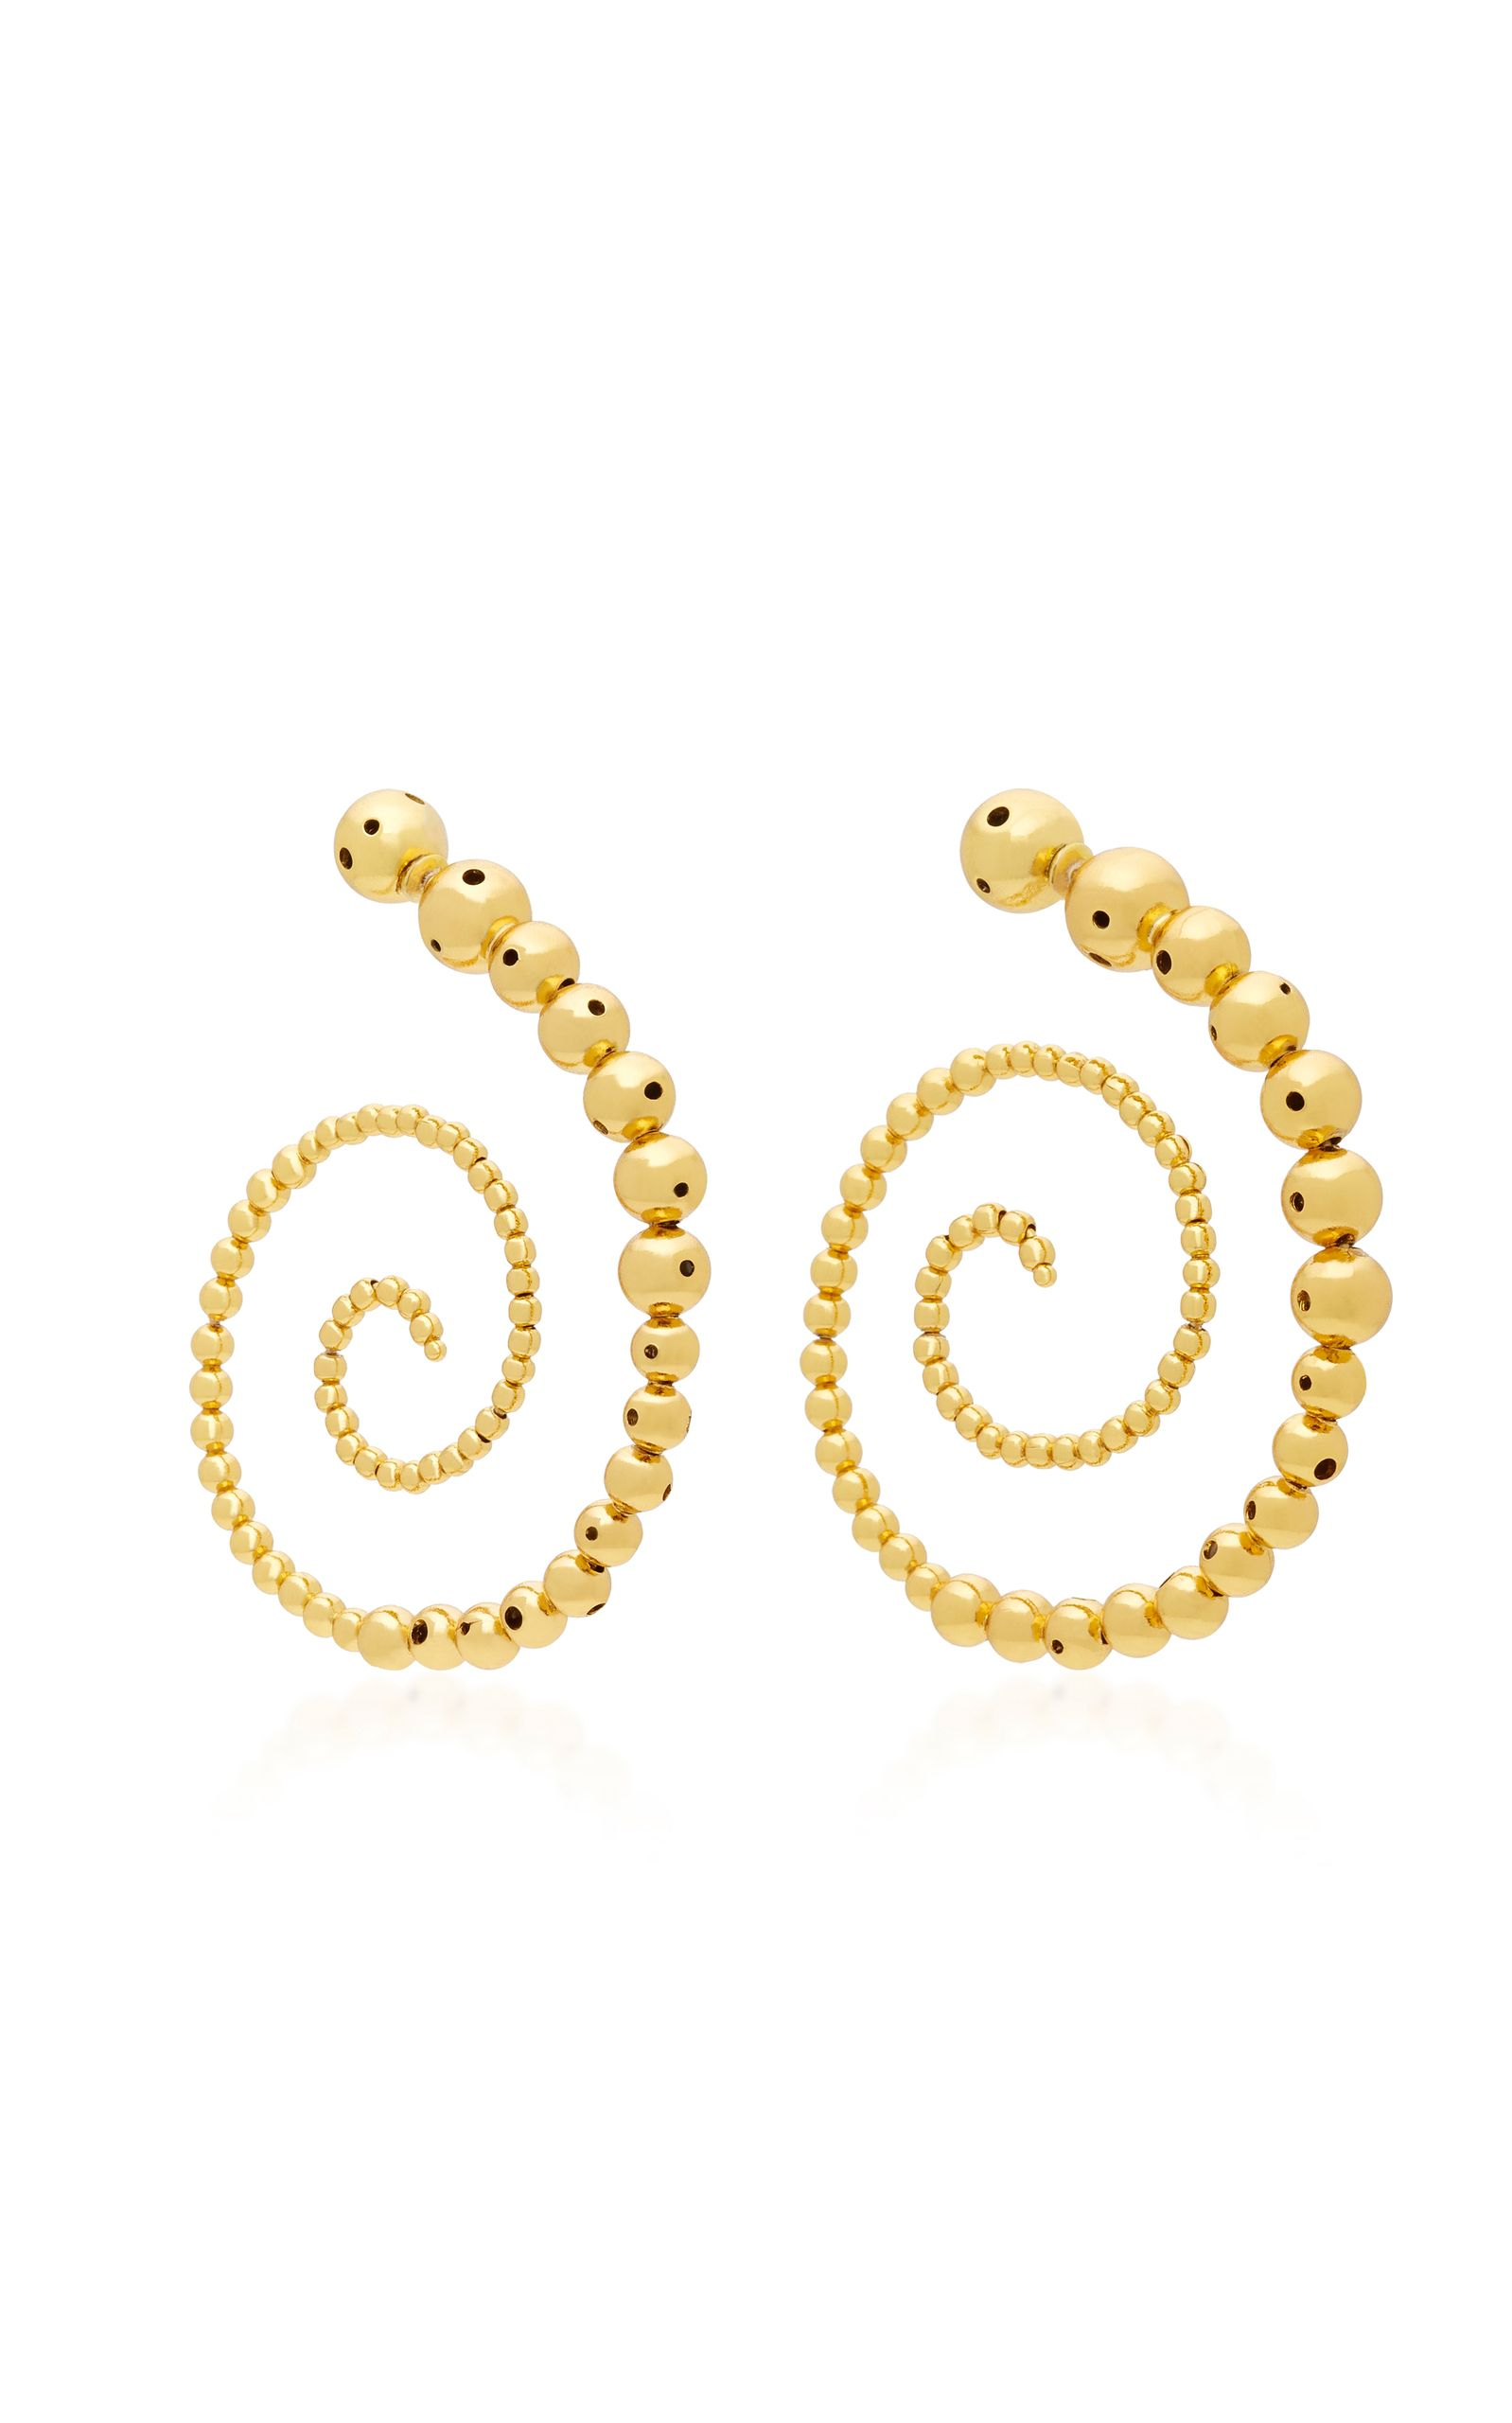 karat at gurhan hoop j jewelry for sale master earrings hoops id gold